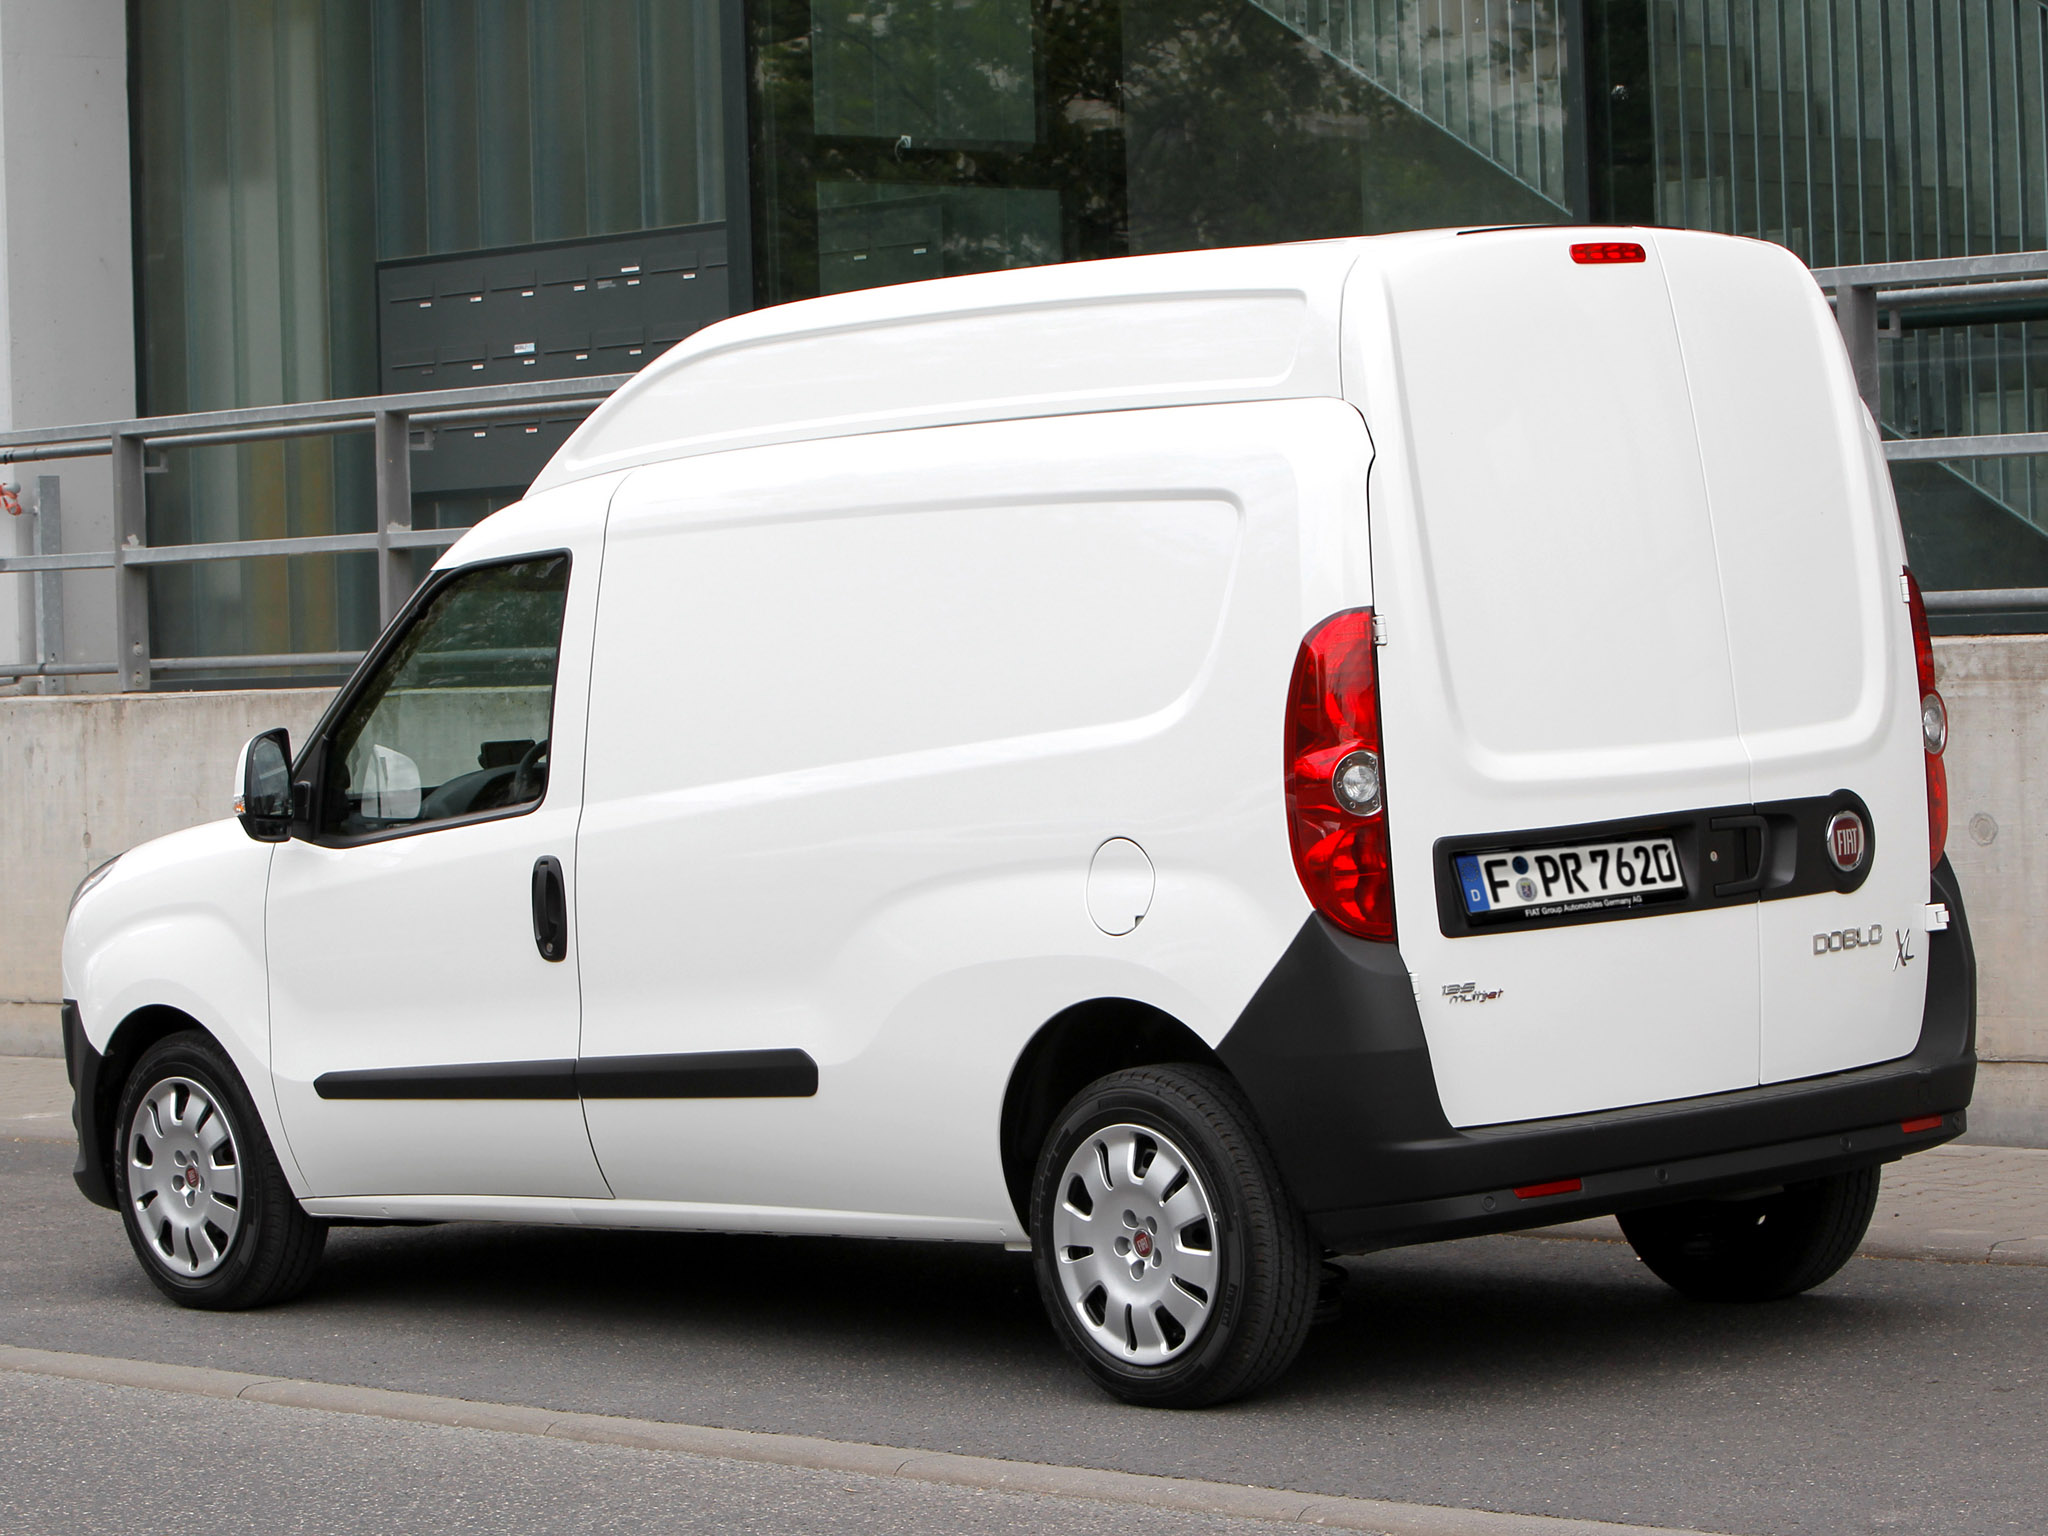 fiat doblo cargo maxi xl 2012 fiat dobl cargo maxi xl 2012 photo 04 car in pictures car. Black Bedroom Furniture Sets. Home Design Ideas